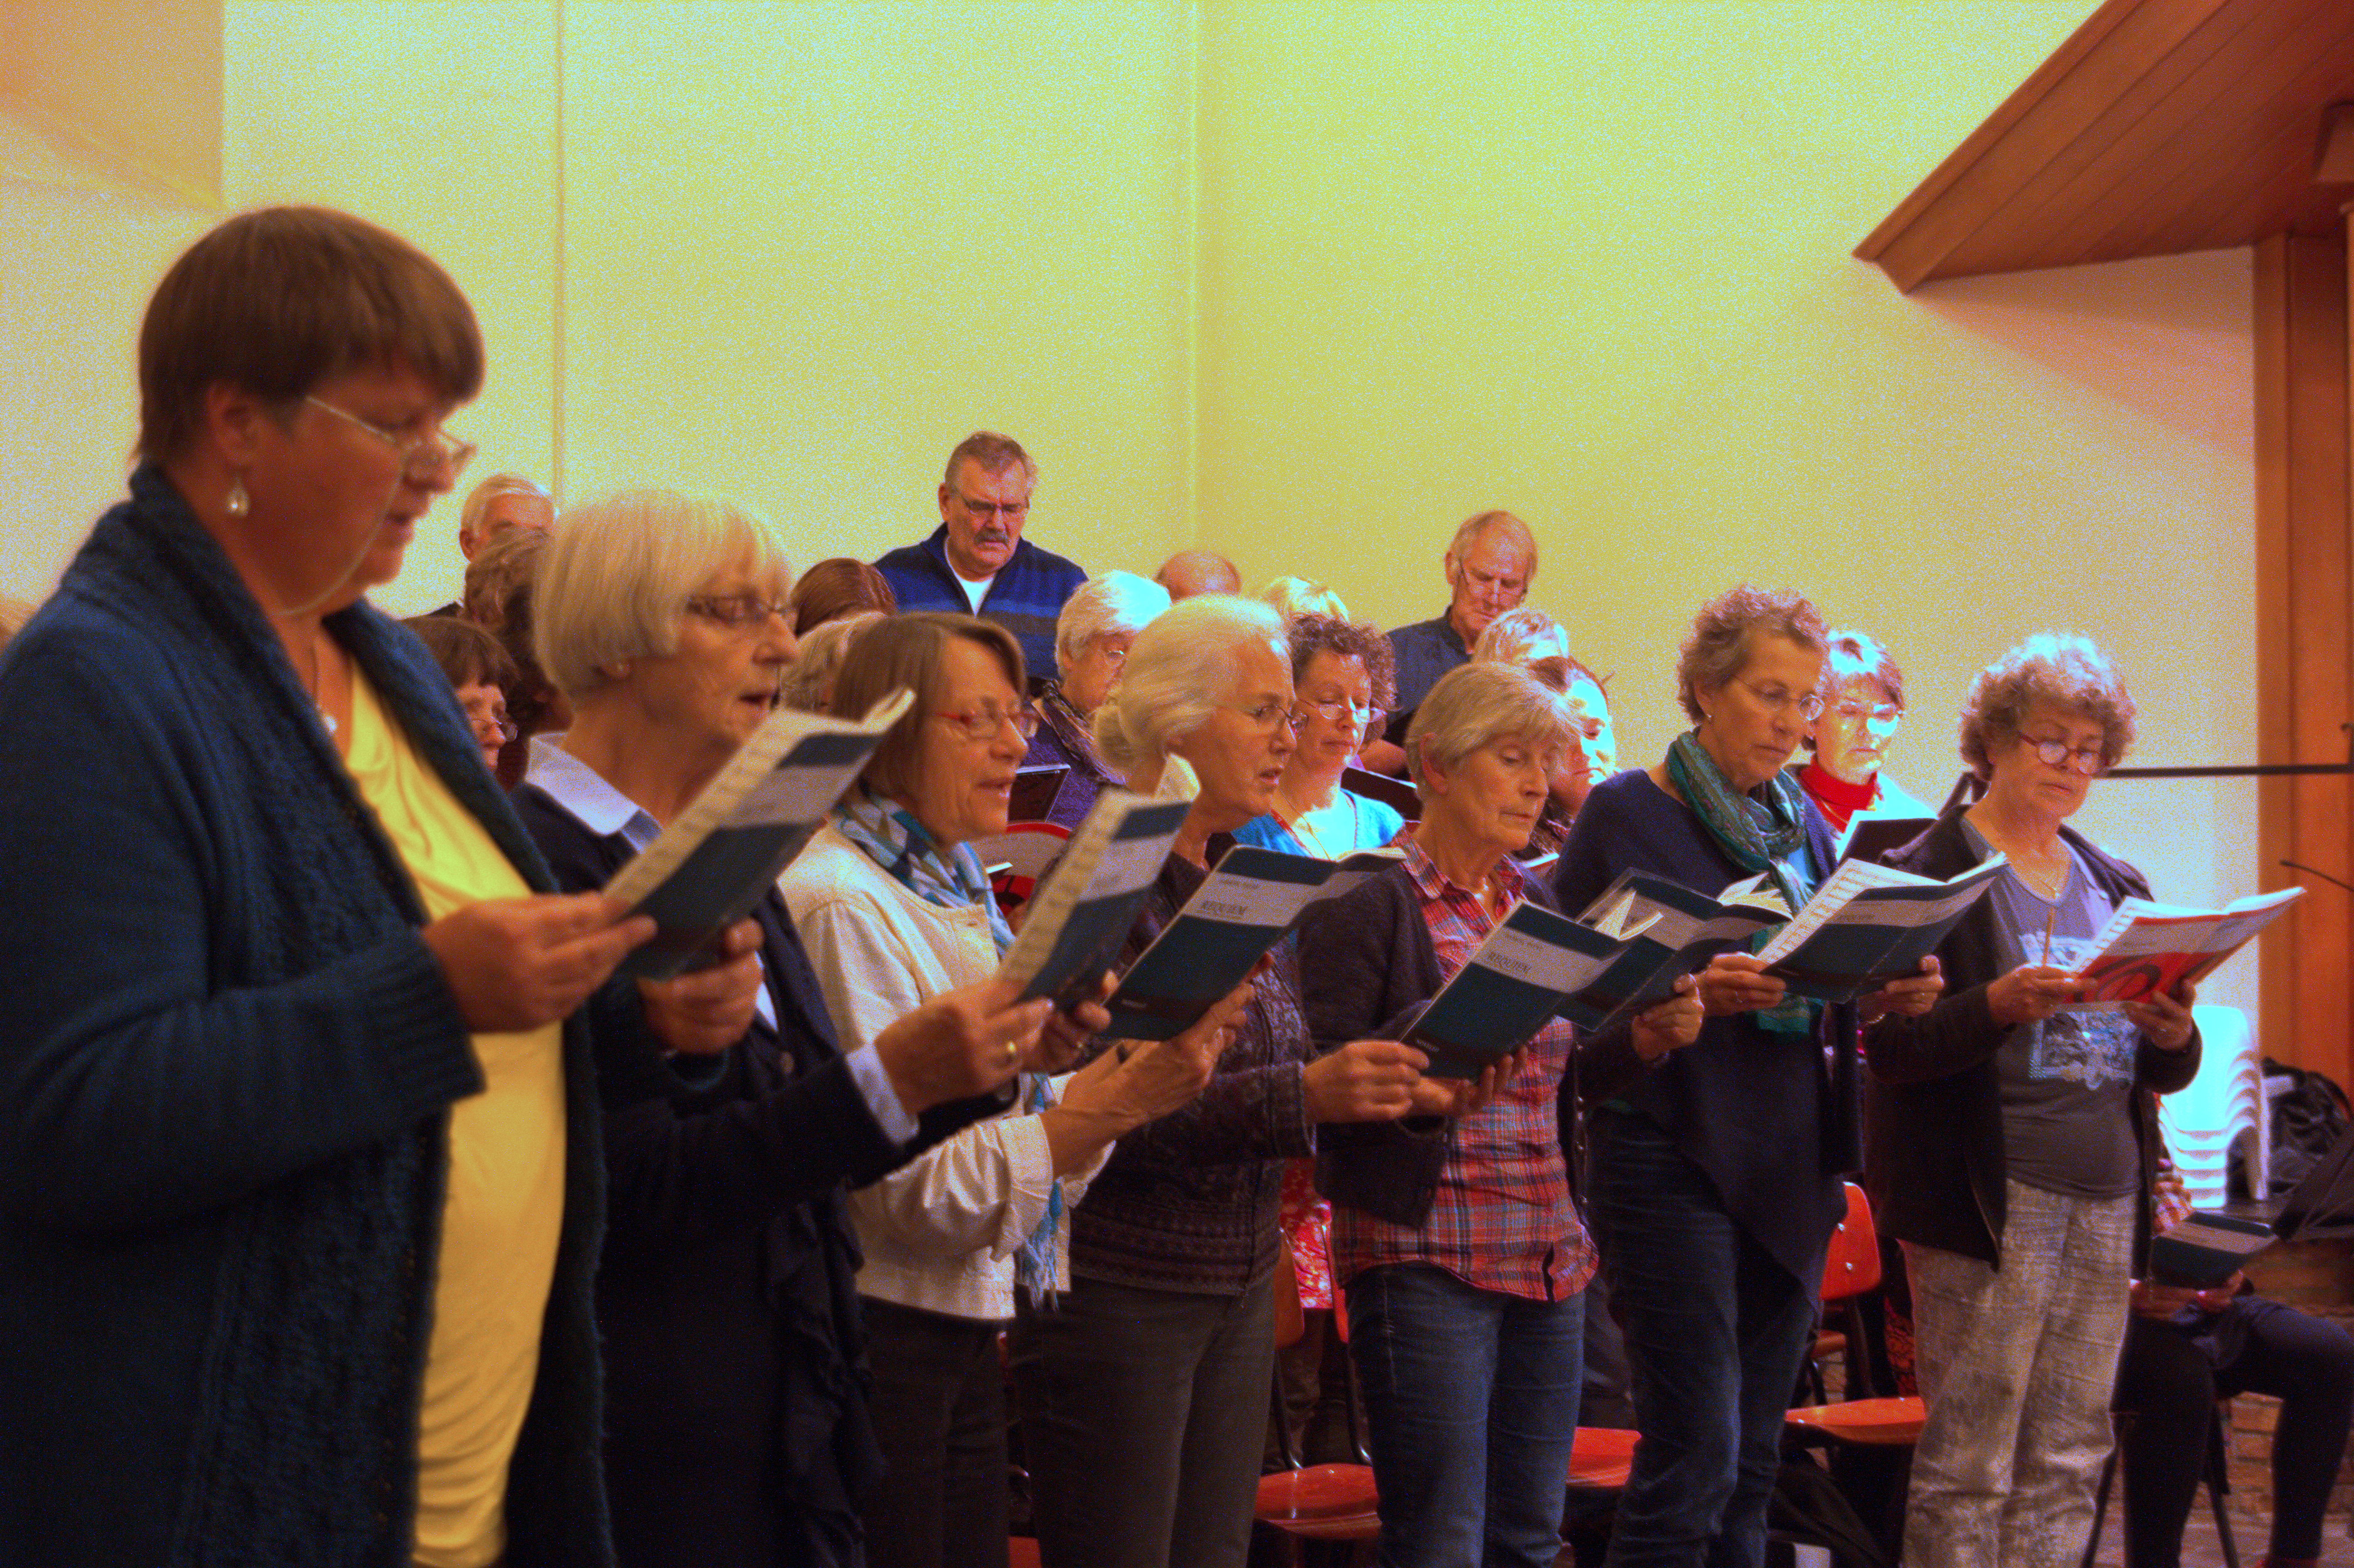 CanticumRepetitie21-10-14 (50a)